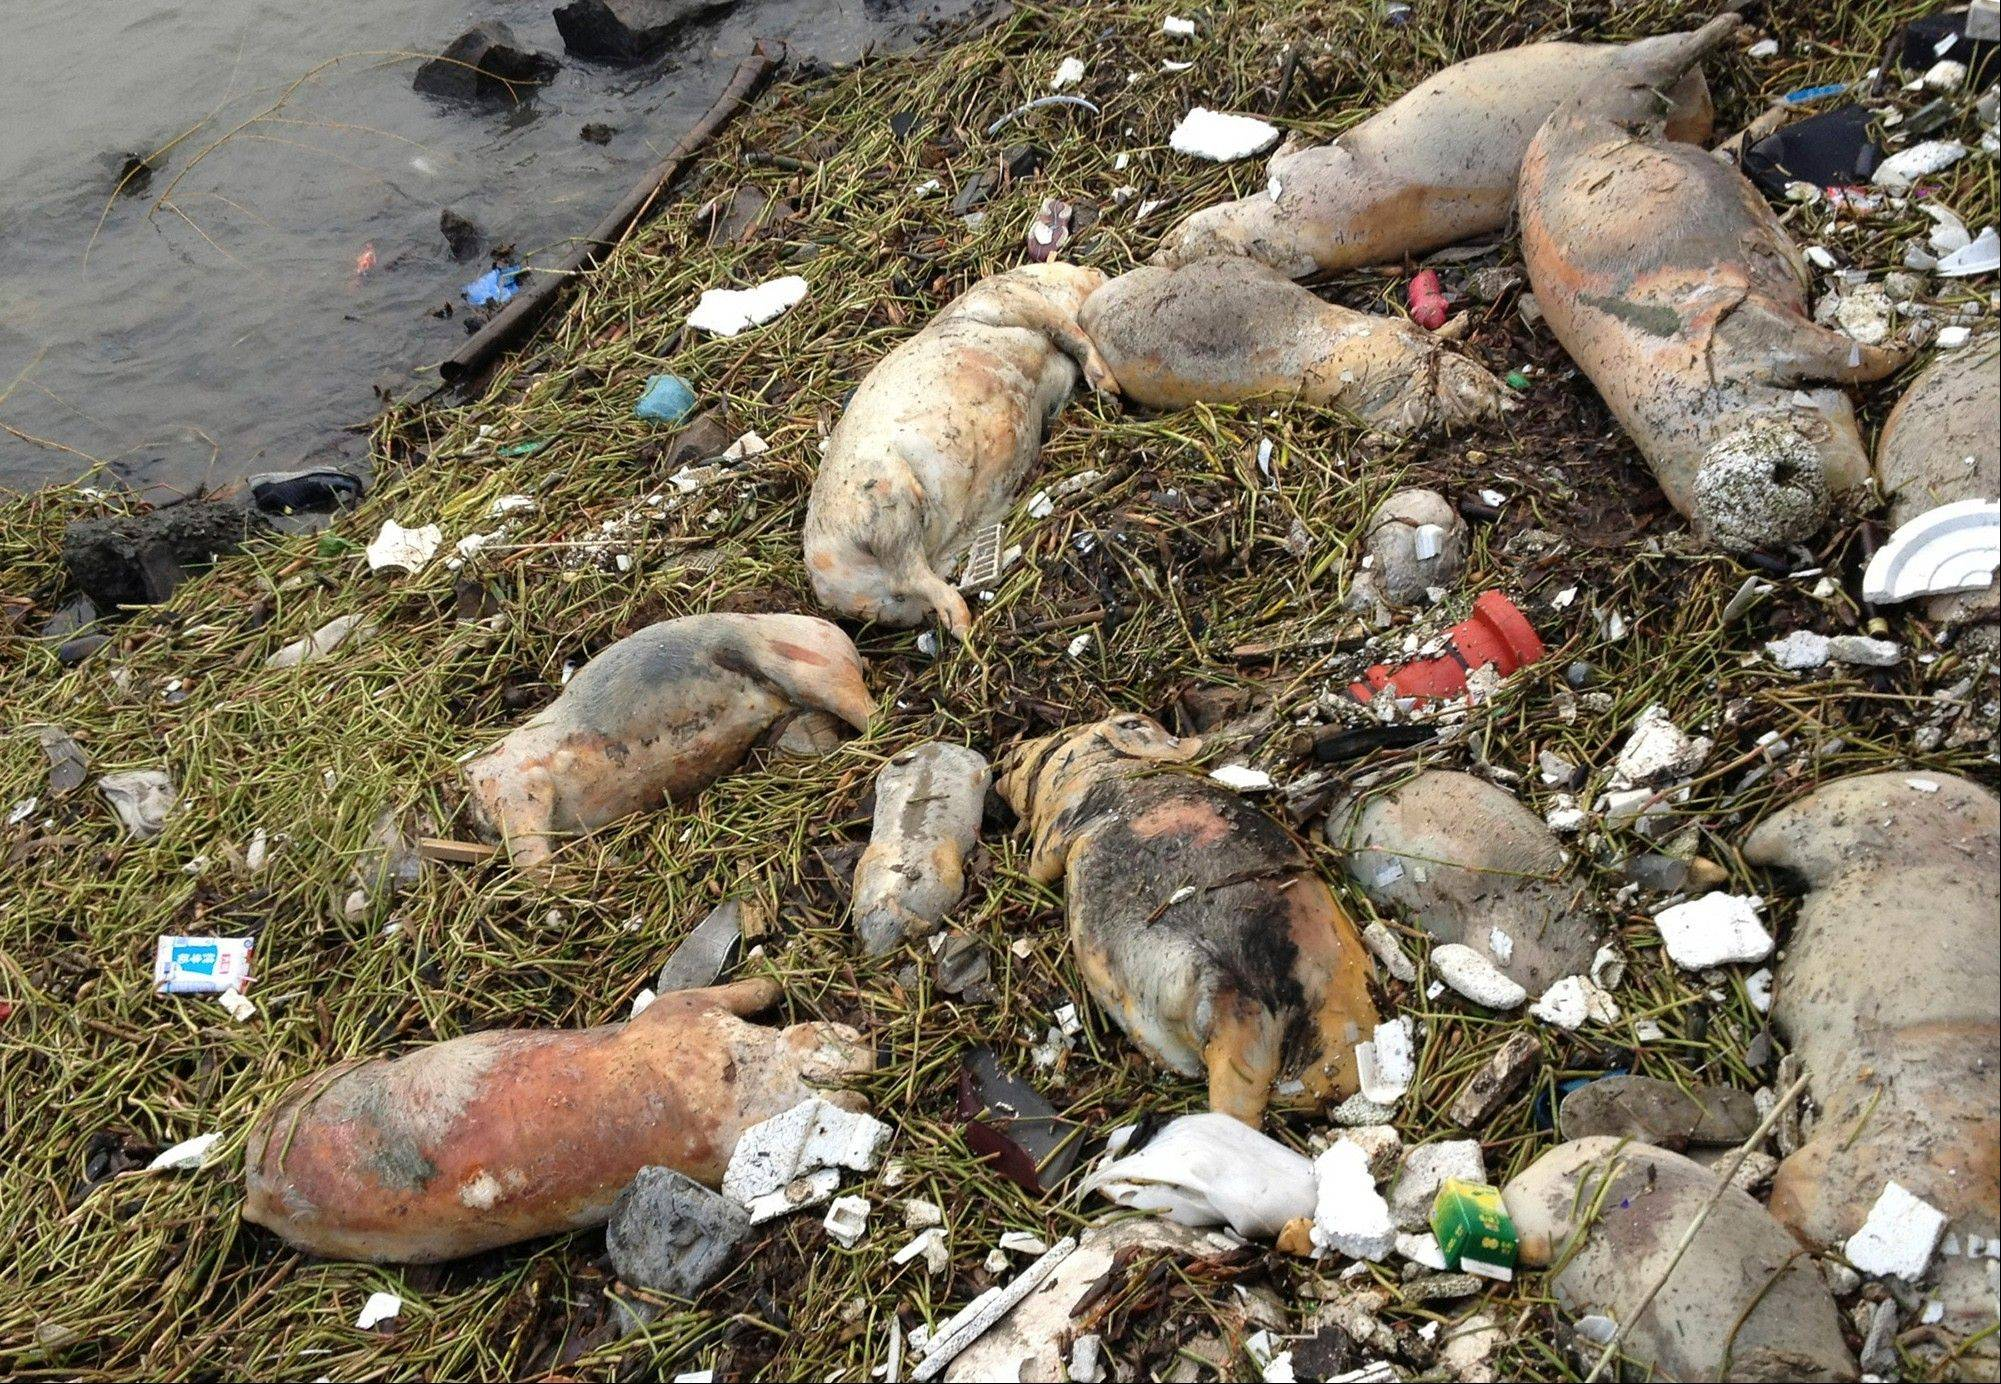 Dead pigs are strewn along the riverbanks of a Shanghair river in the Songjiang district in Shanghai, China. More than 2,800 carcasses have been found floating into the financial hub through Monday.